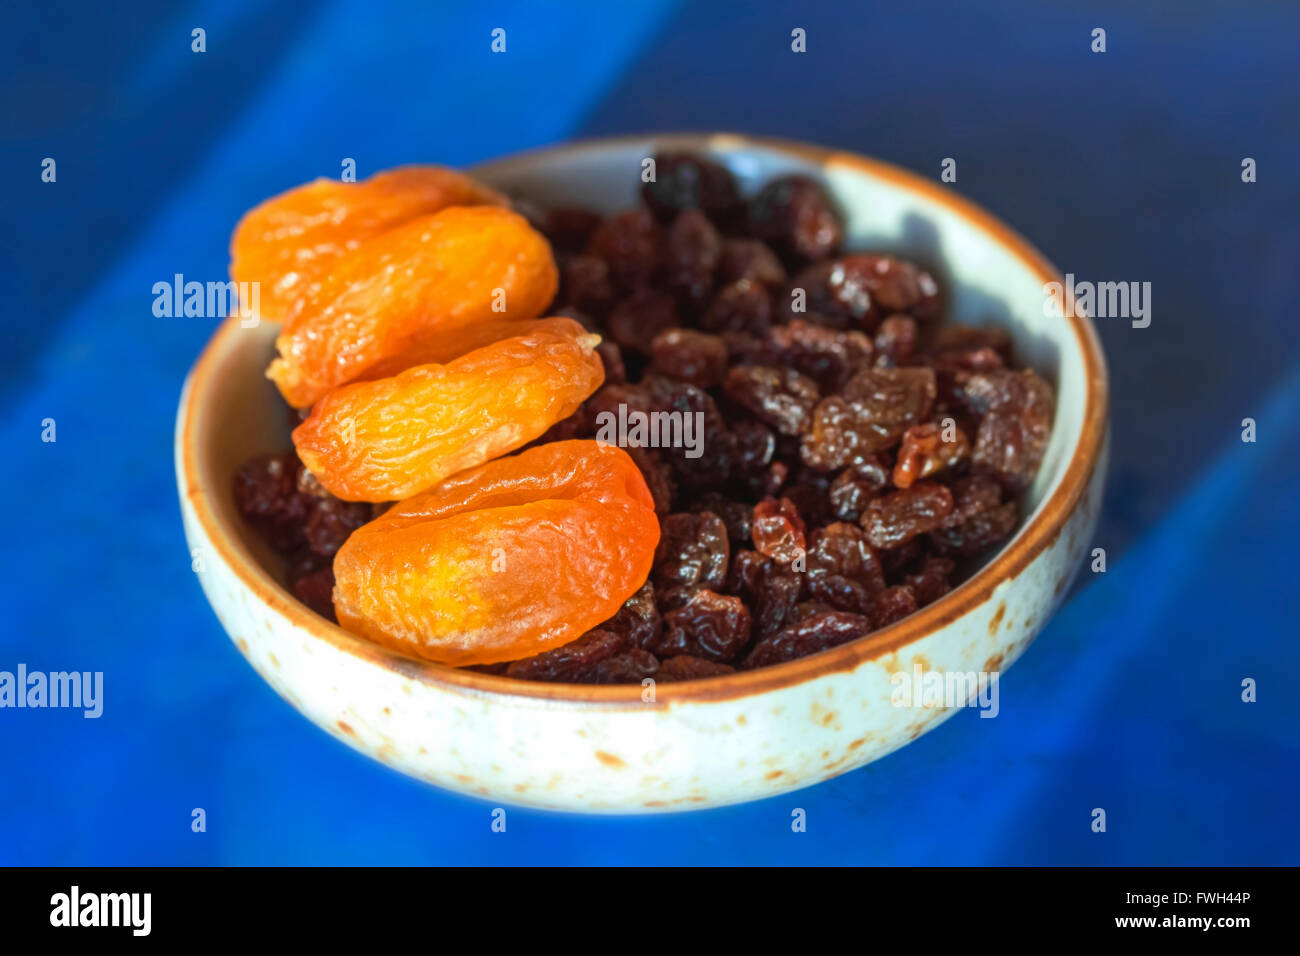 Dried apricots and raisins in little plate on blue background - Stock Image